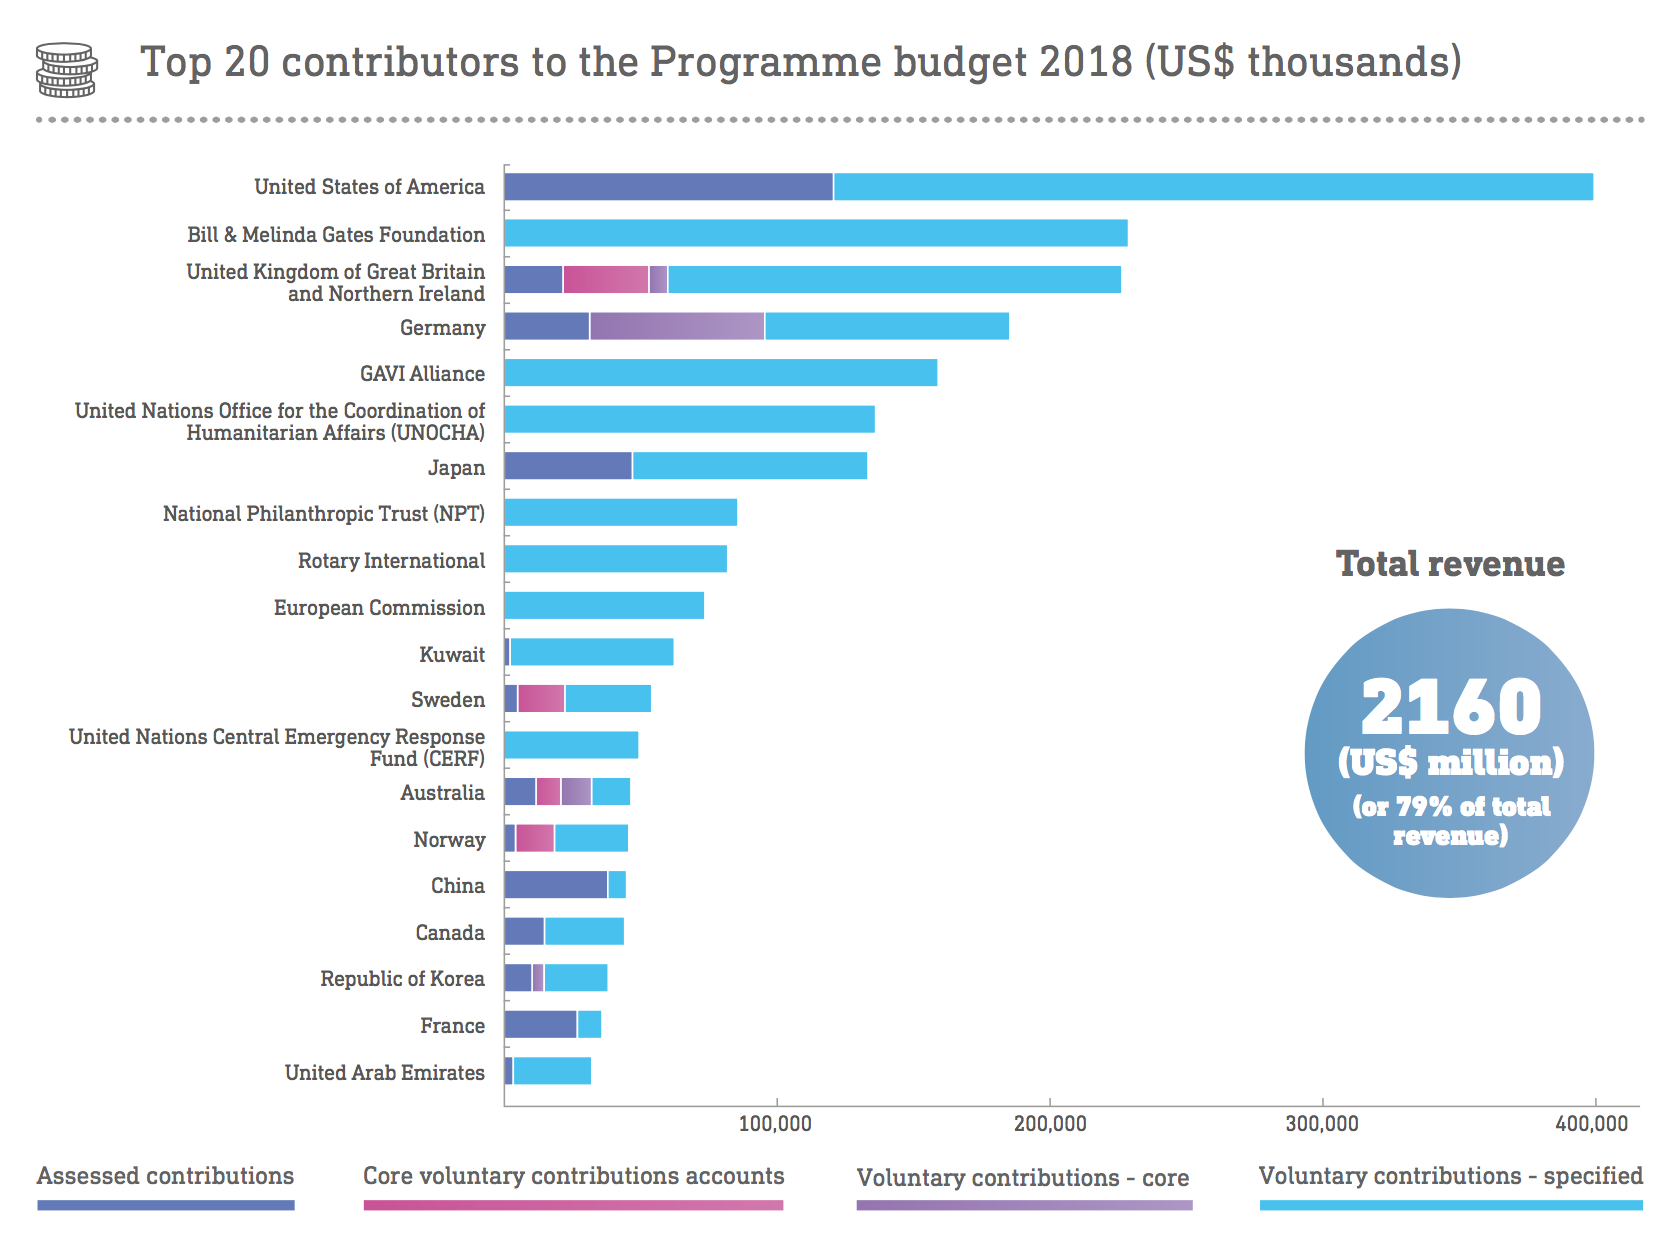 Top 20 contributors to the Programme budget 2018 (US$ thousands)